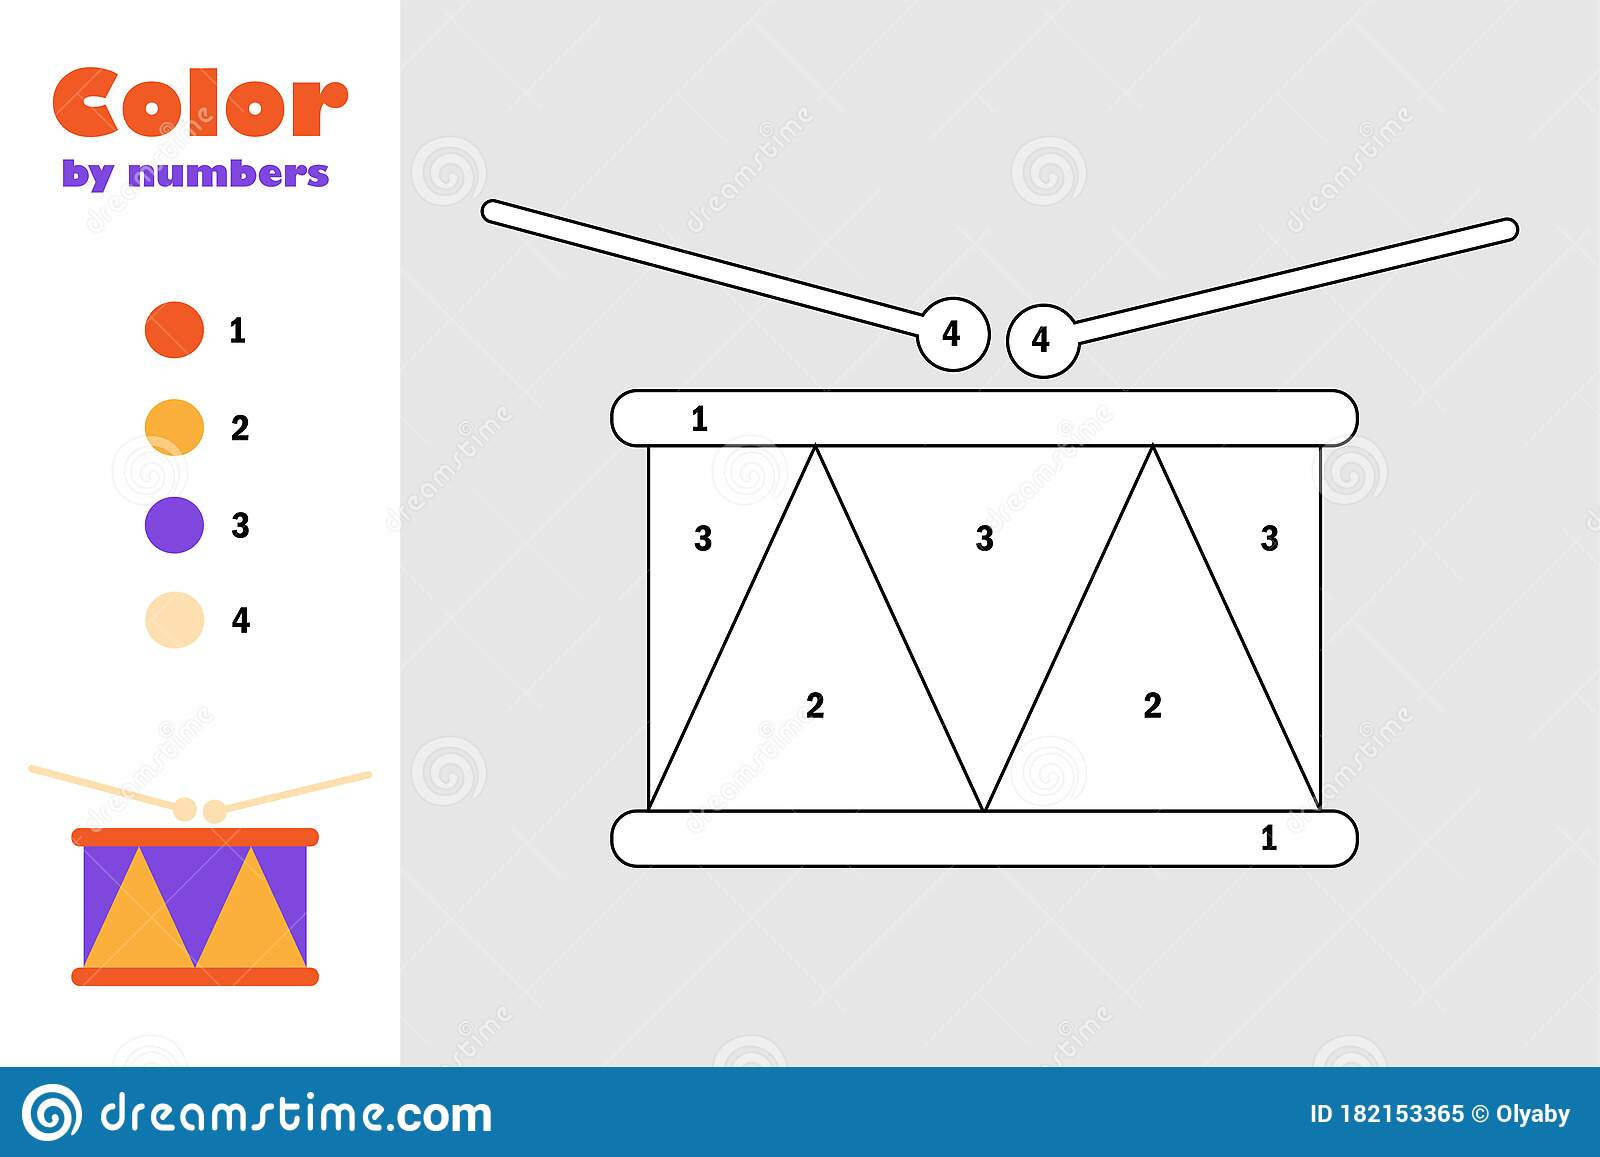 Toy Drum In Cartoon Style Color By Number Education